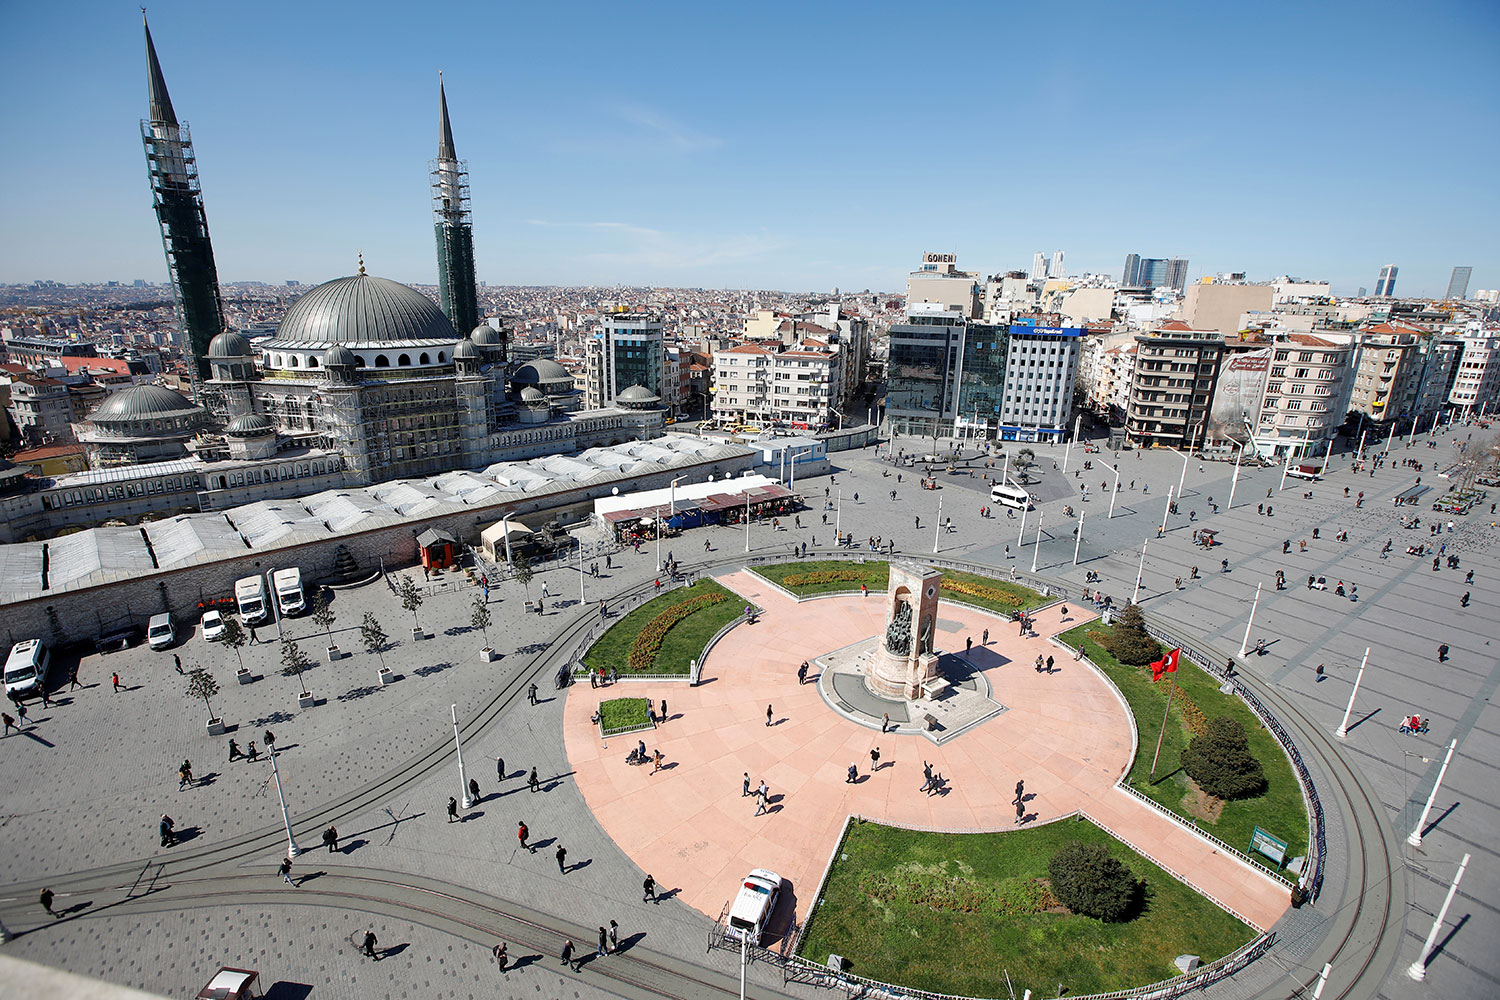 The photo is an aerial shot of the iconic square on a beautiful day with very few people walking around.